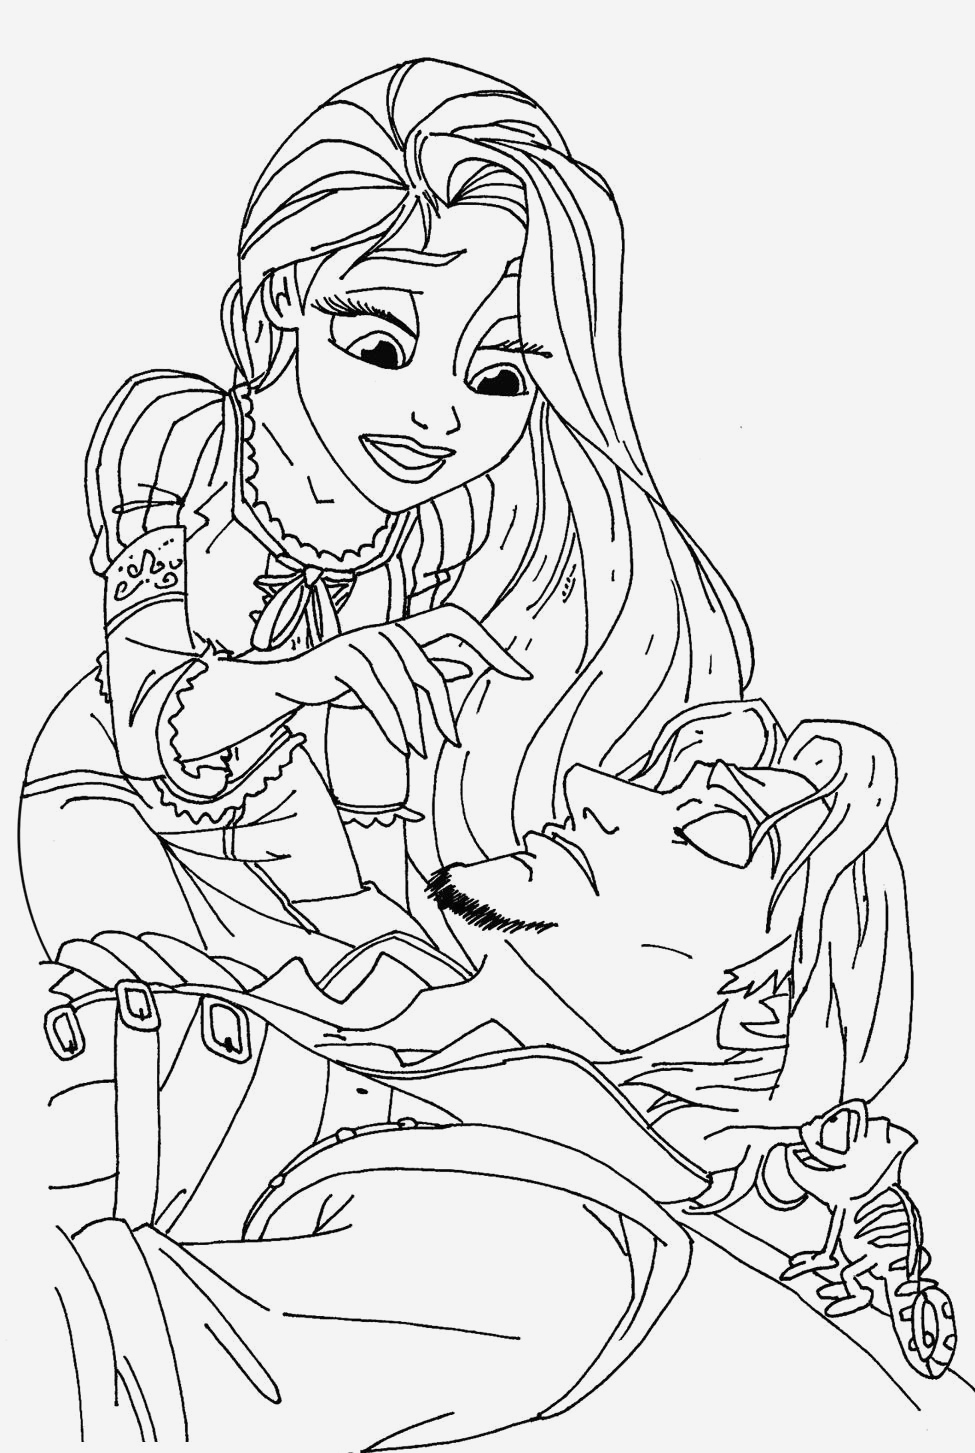 Coloriage De Princesses Disney A Imprimer Luxury Dessin A Imprimer Princesse Disney Gratuit Of Coloriage De Princesses Disney A Imprimer